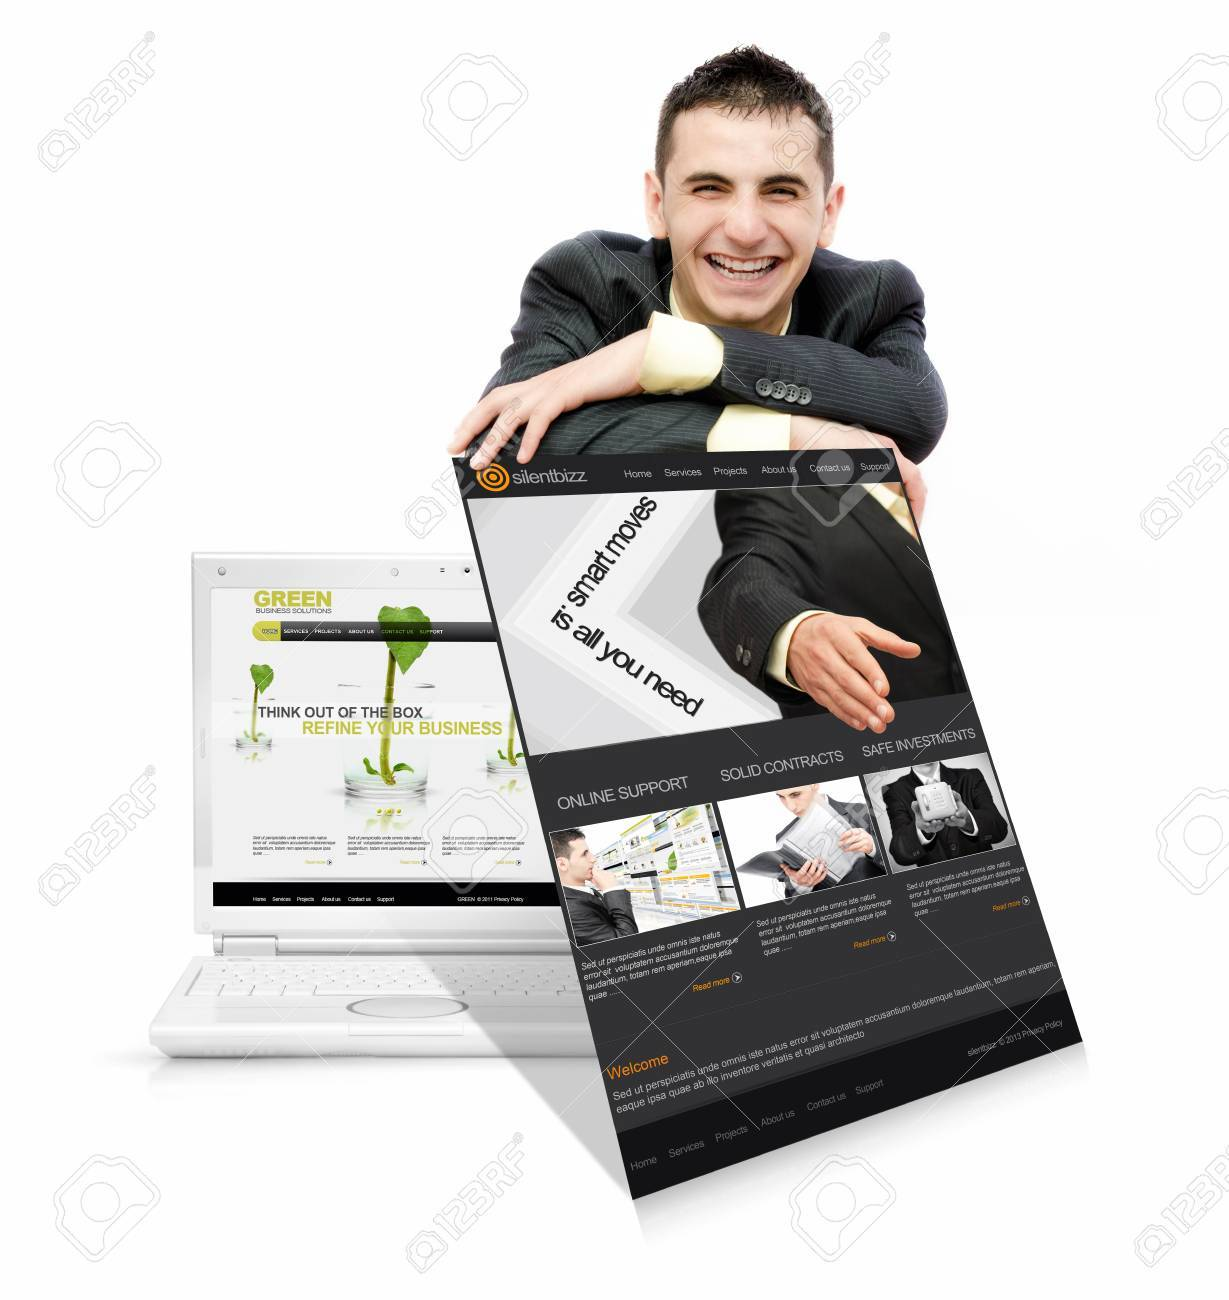 Businessman who offer online services Stock Photo - 17506672